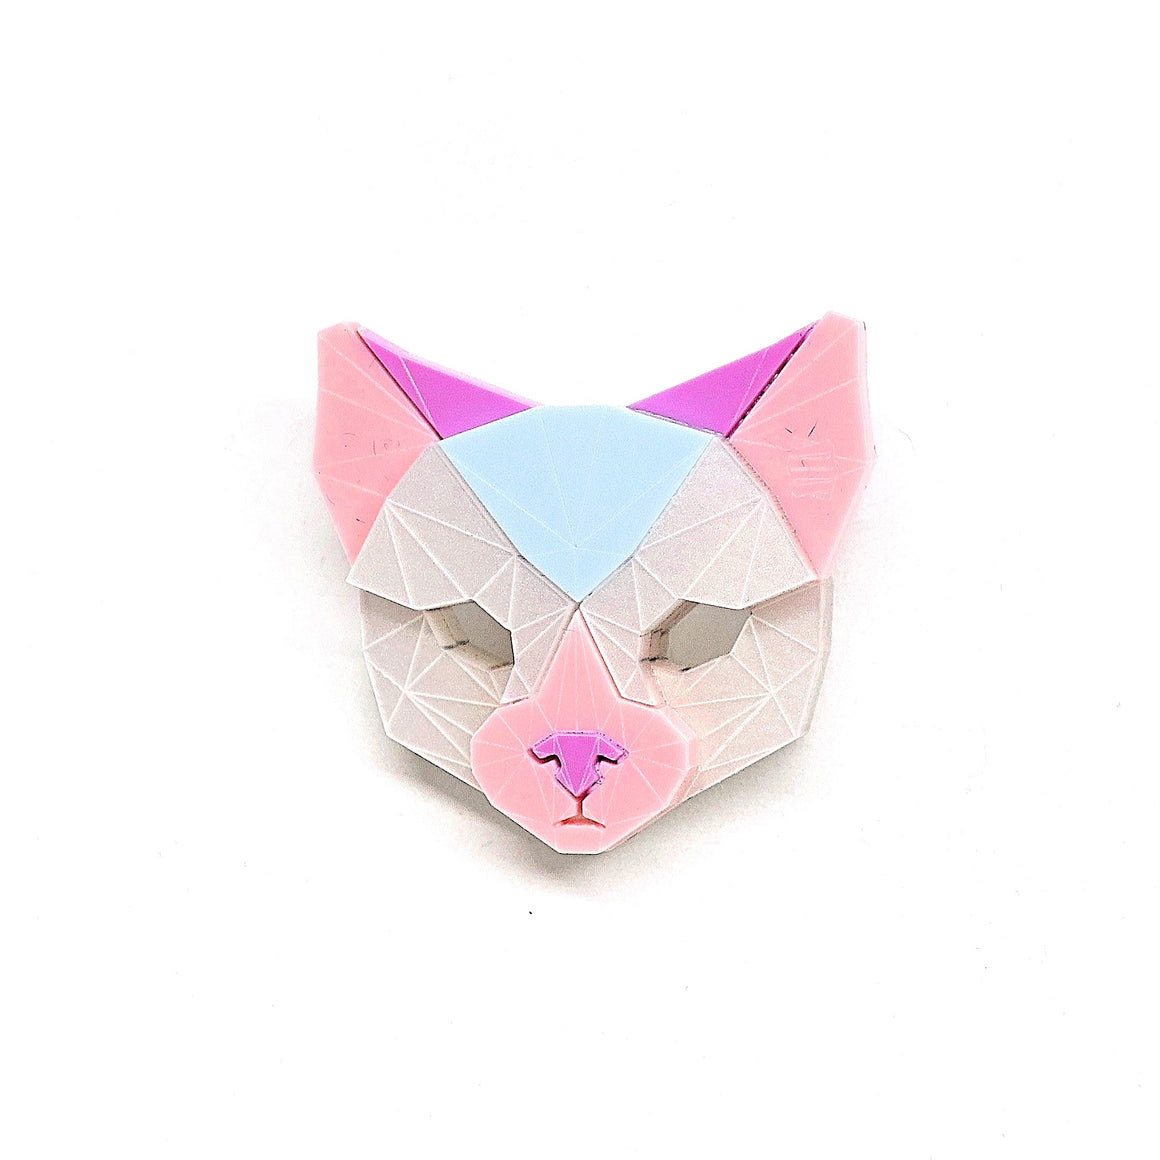 Cat Head Brooch (Valkyrie) by Sstutter